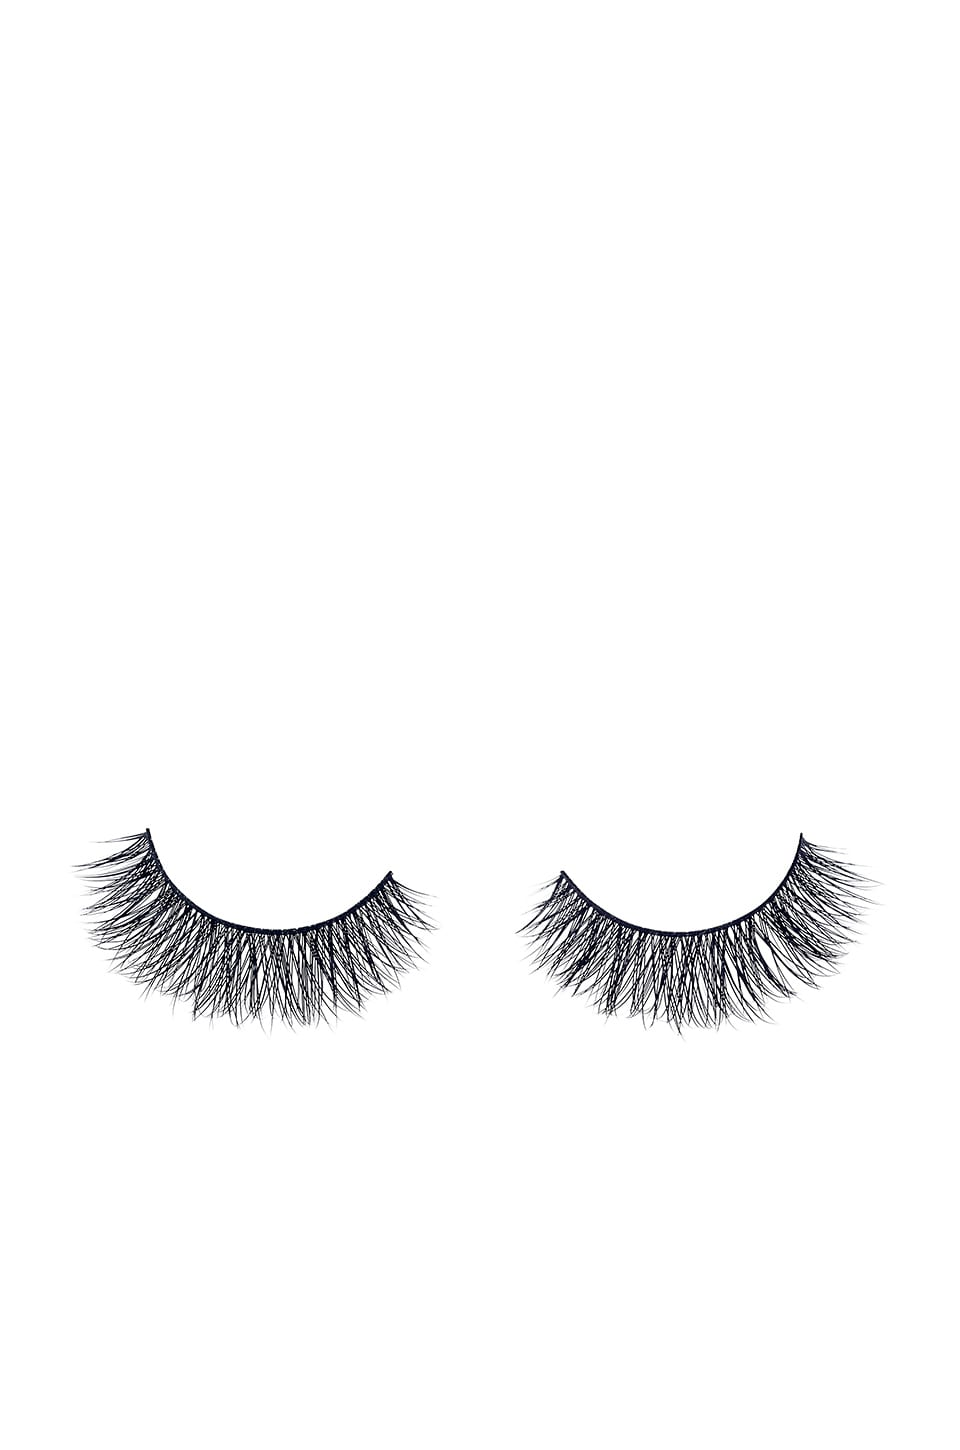 Artemes Lash Love Shady Mink Eyelashes in Black